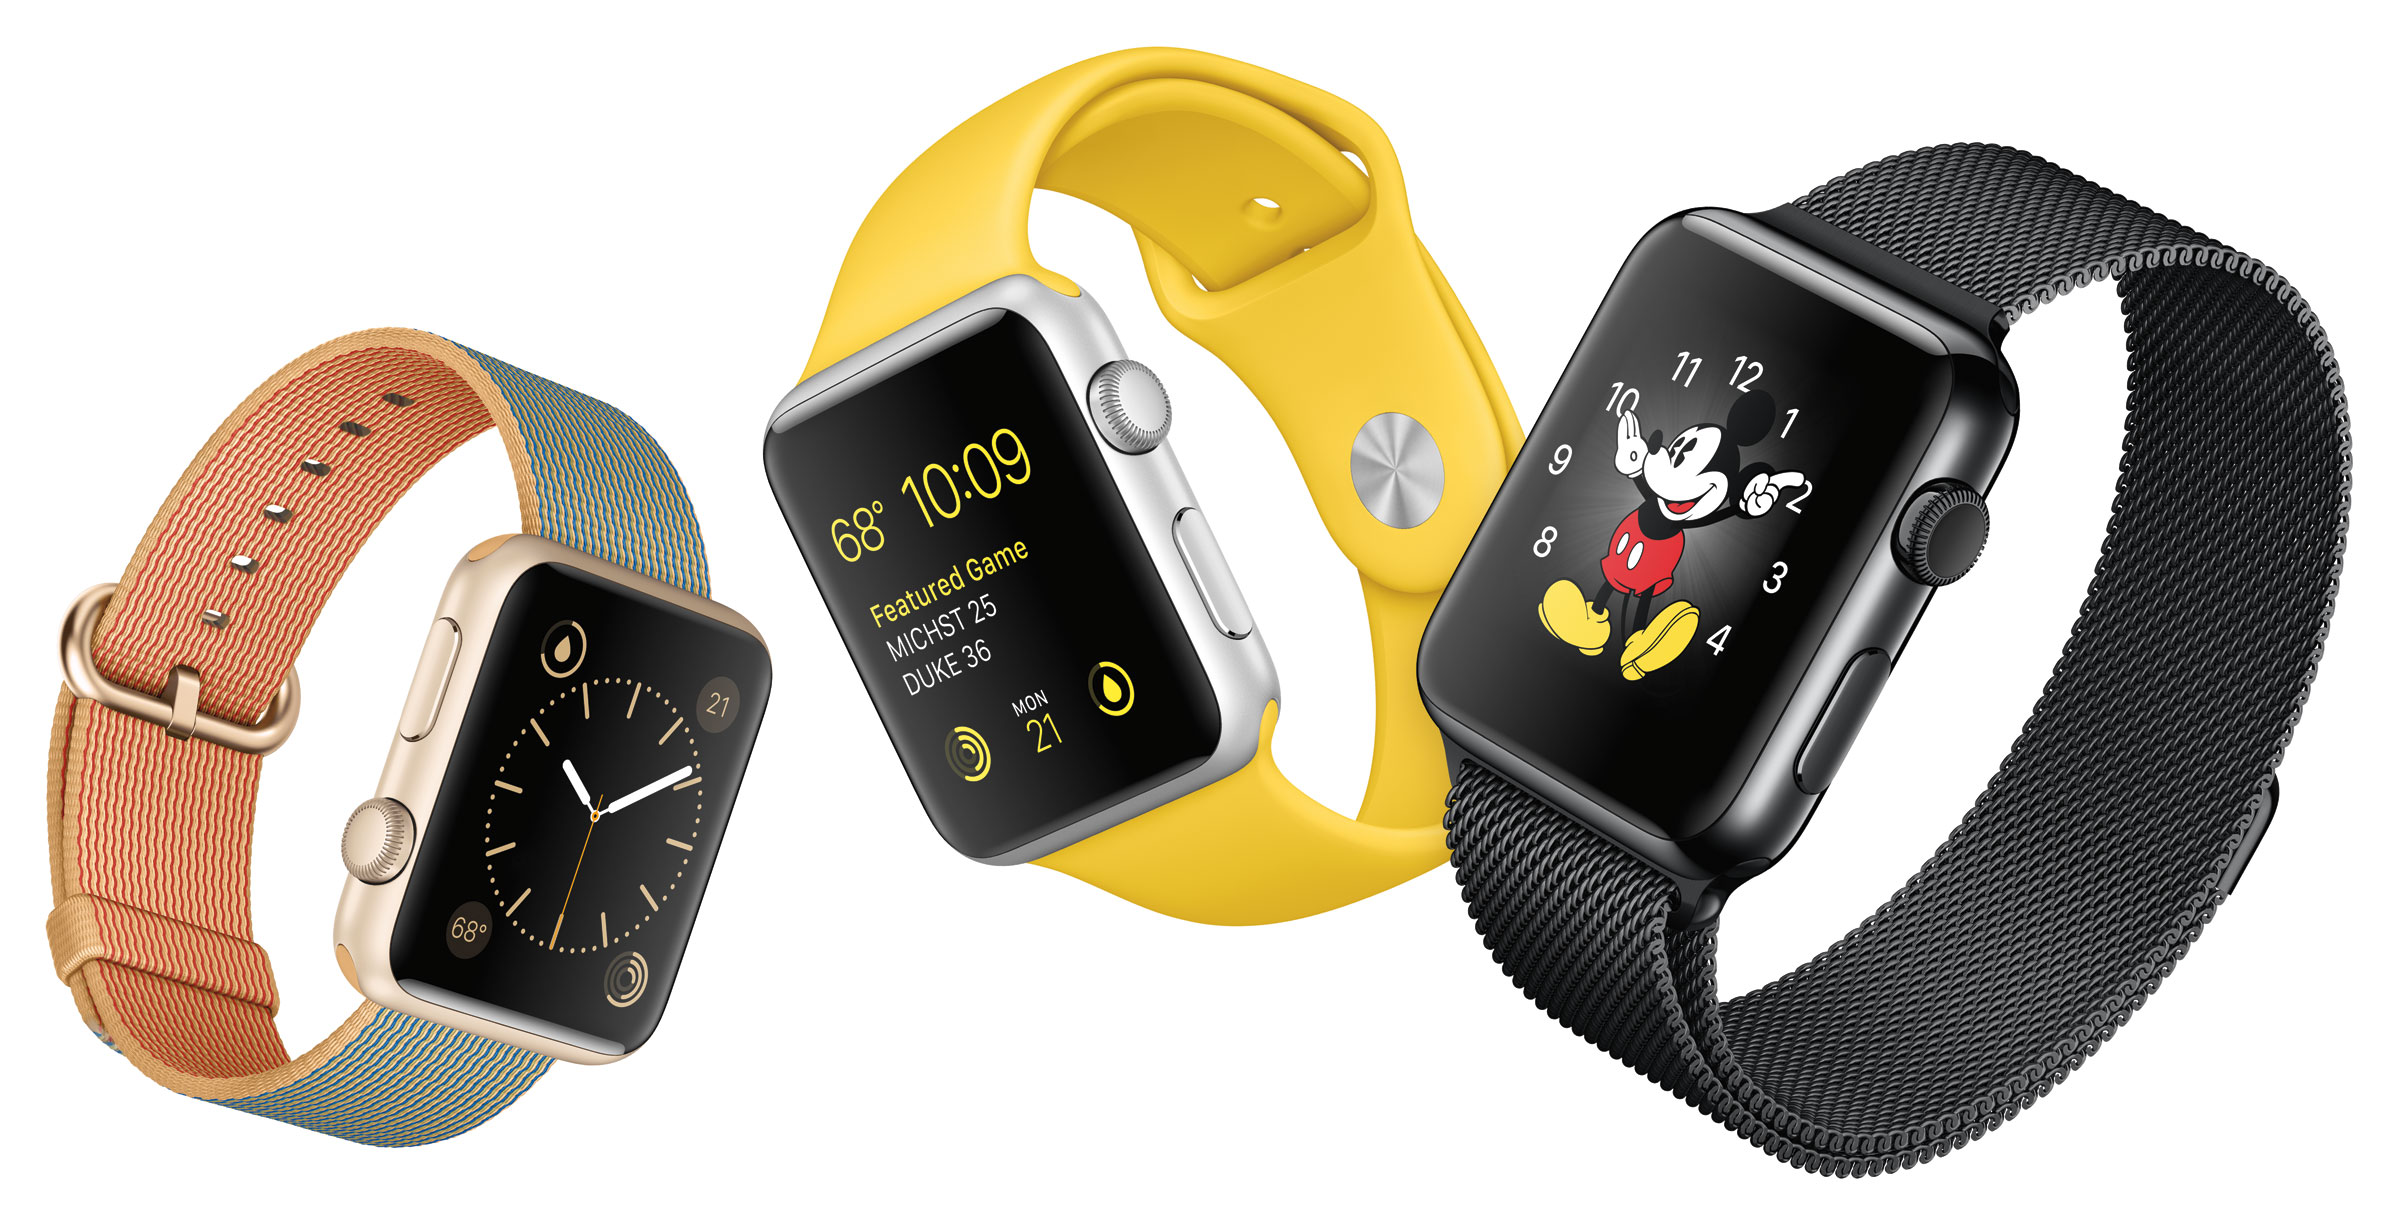 Press image of several Apple Watch models